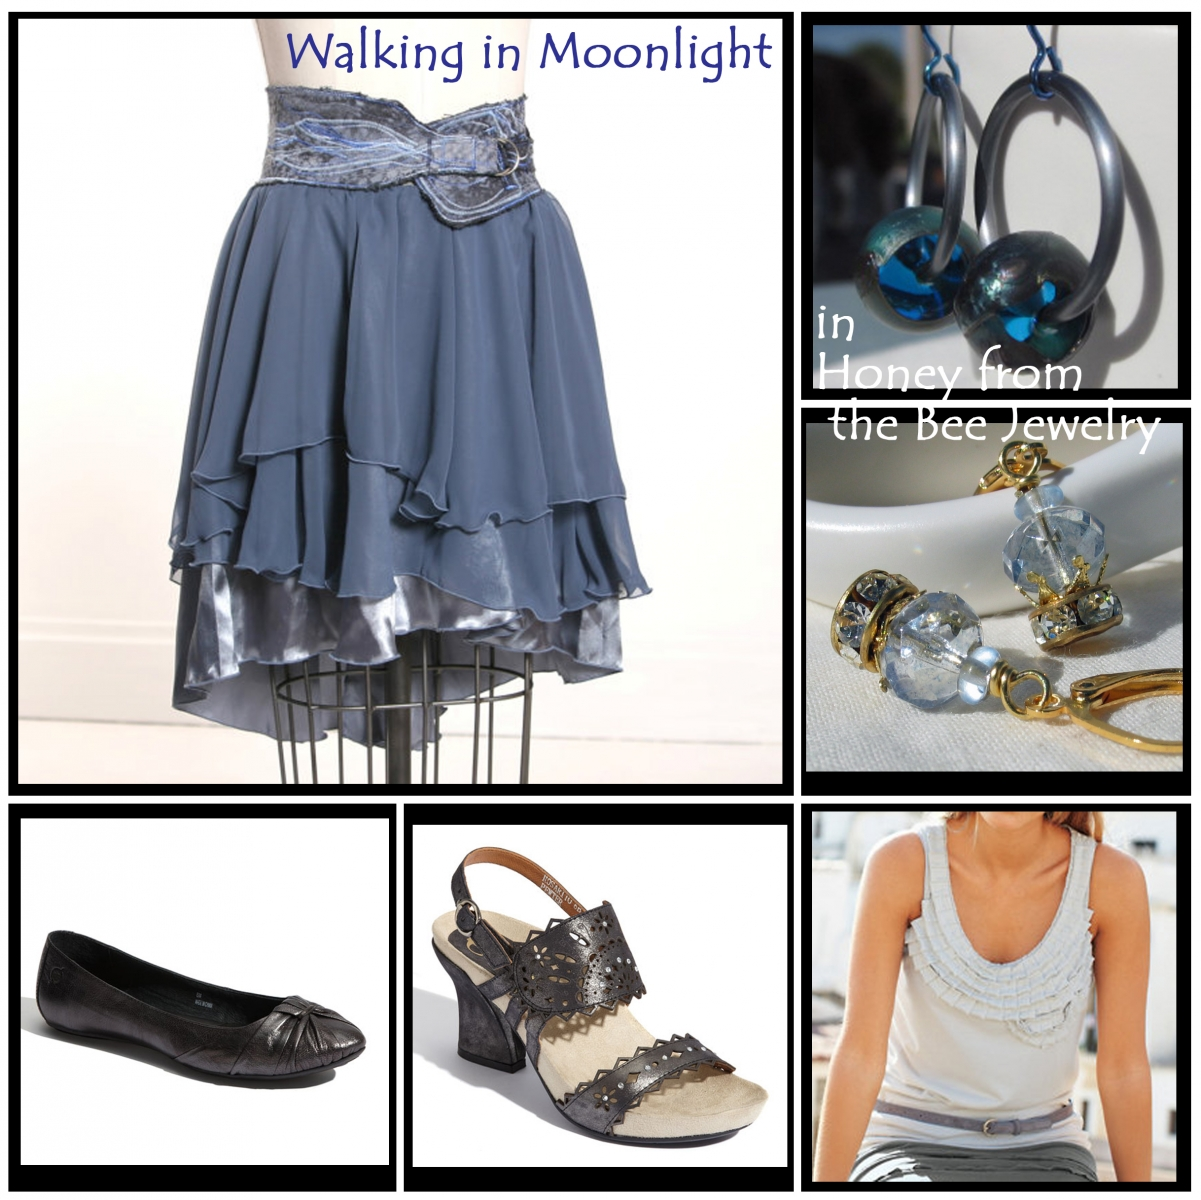 Moonlight inspired fashion and jewelry